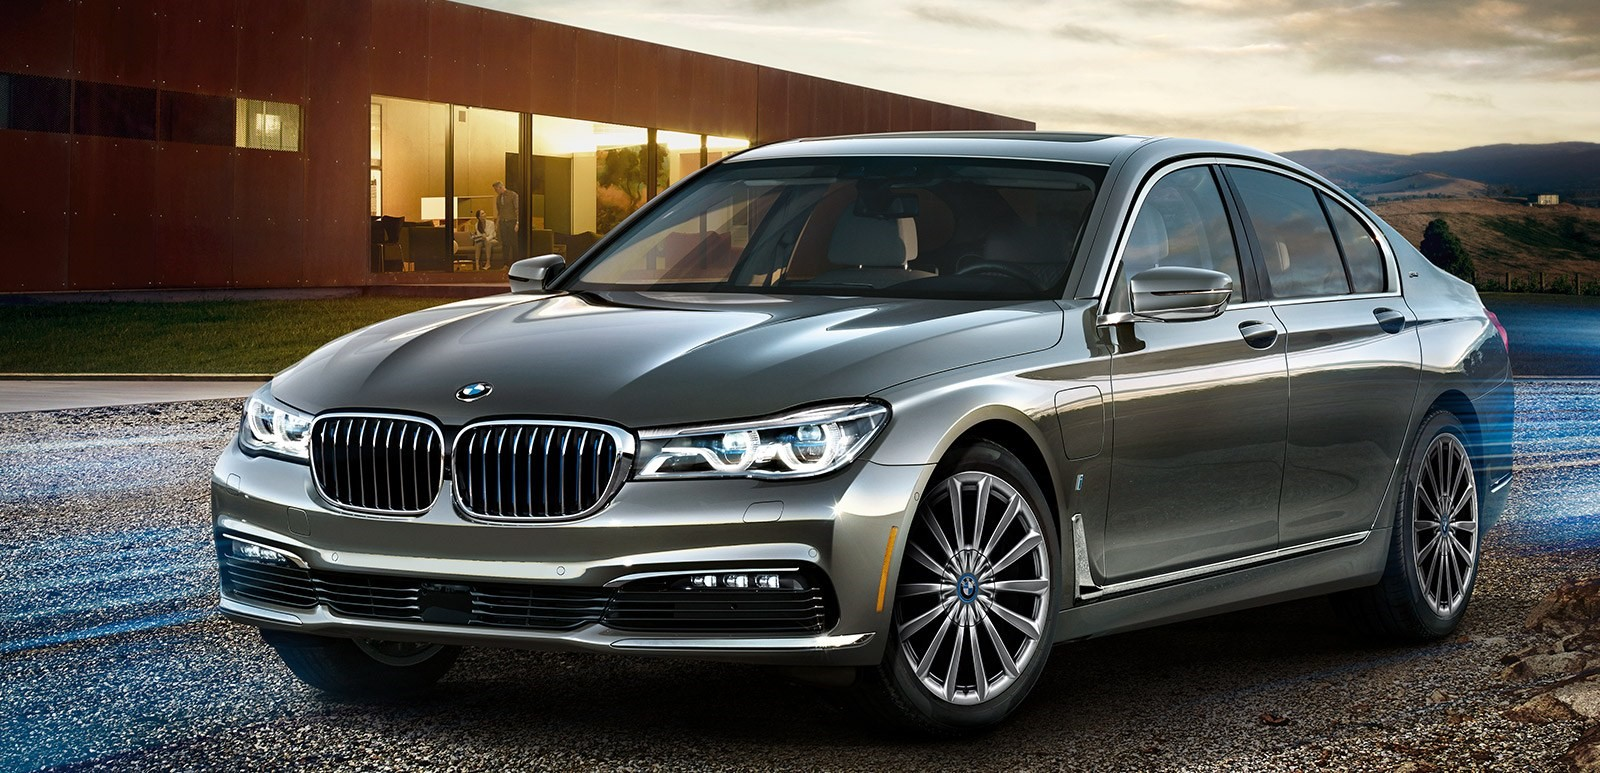 The Elite New 2018 Bmw 7 Series Has Arrived